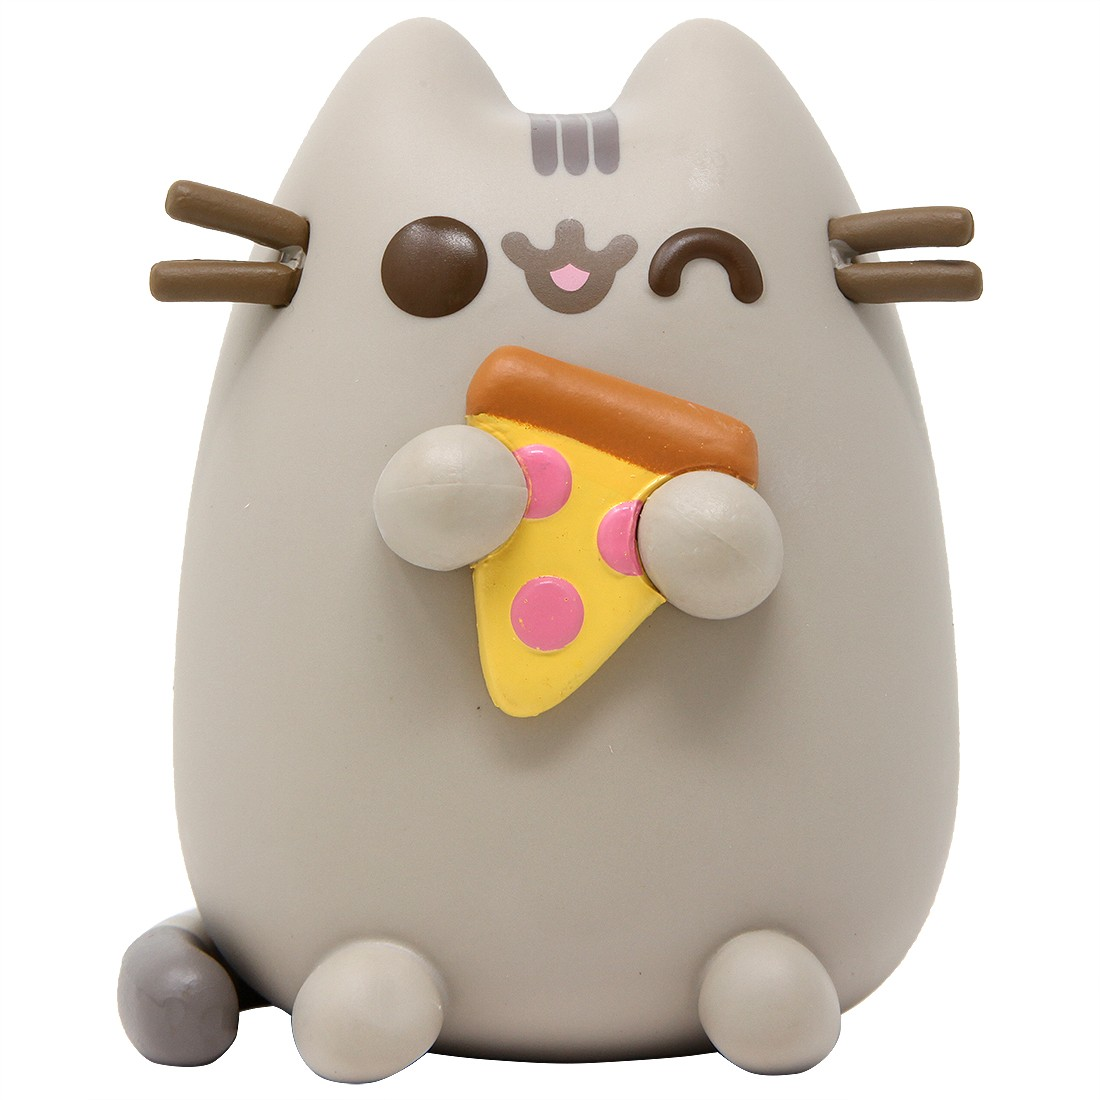 Funko POP Pusheen The Cat - Pusheen With Pizza (gray)